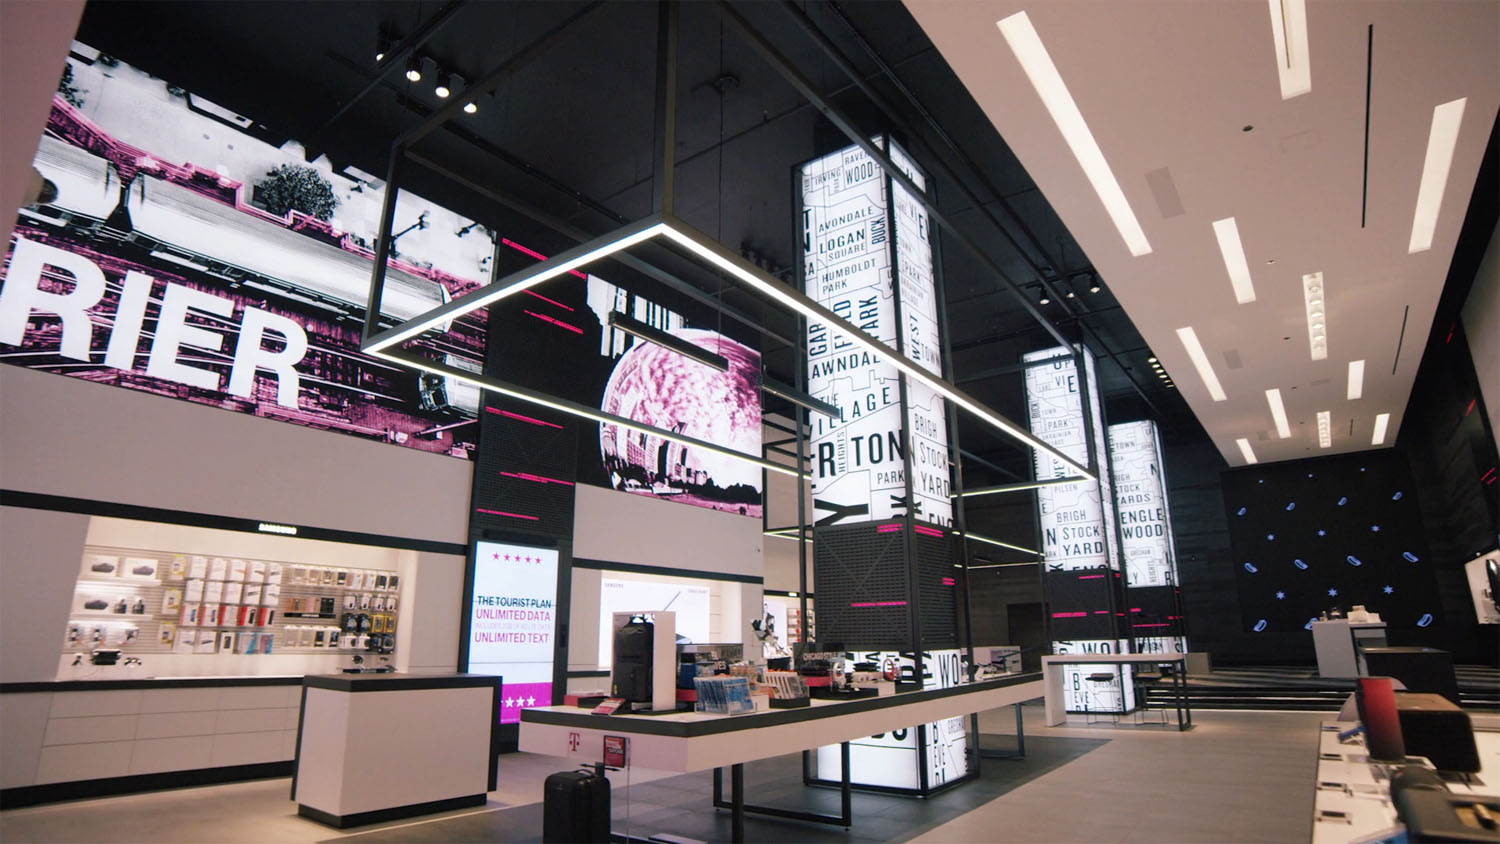 T-Mobile Signature Store - Magnificent Mile, Chicago, IL - RCS